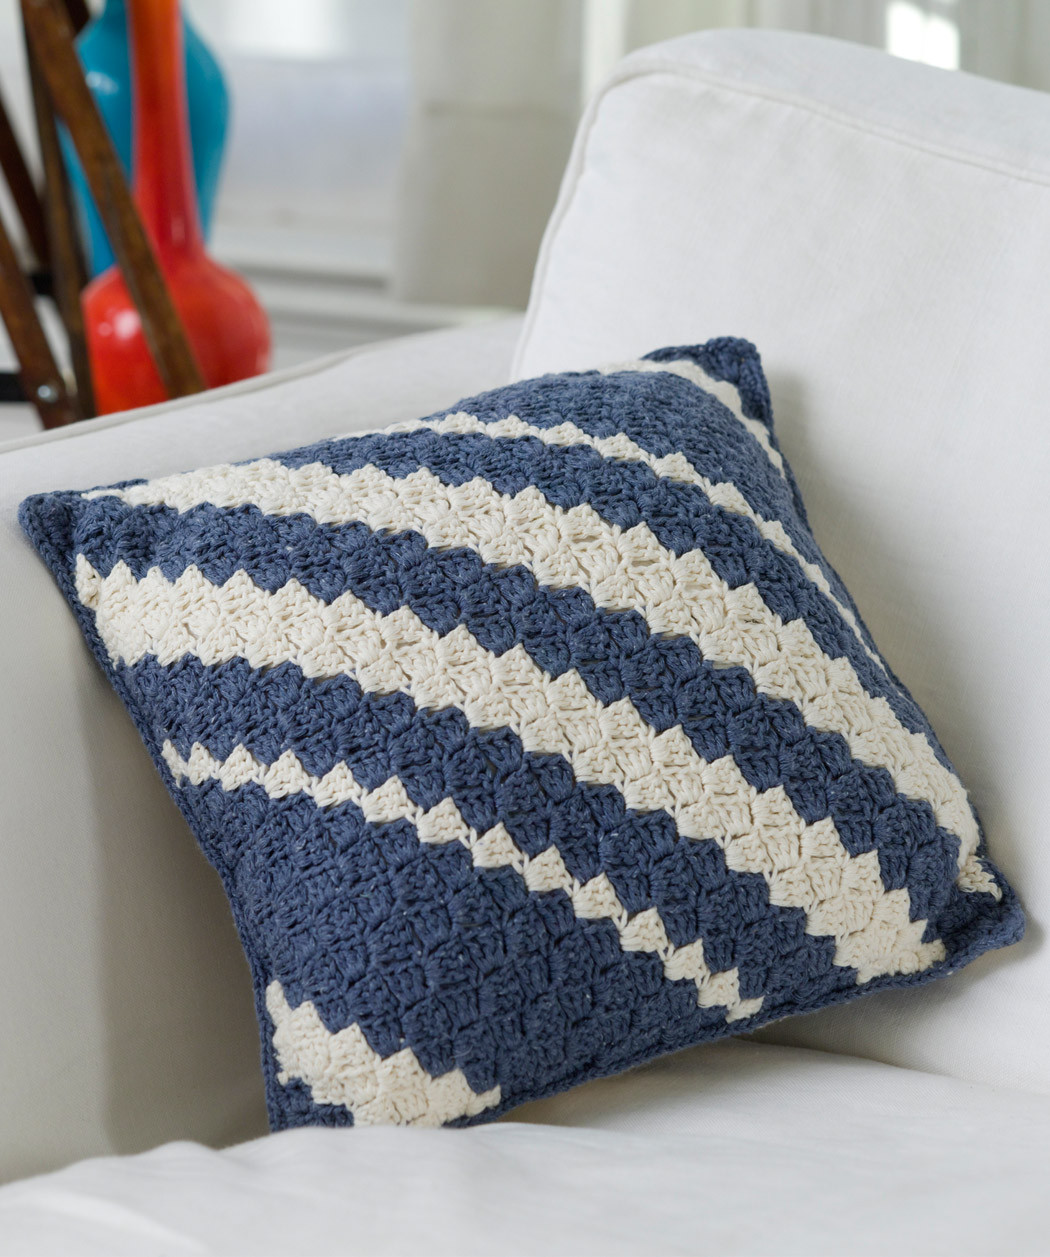 Crochet Pillow New 27 Easy Crochet Pillow Patterns Of Superb 50 Images Crochet Pillow